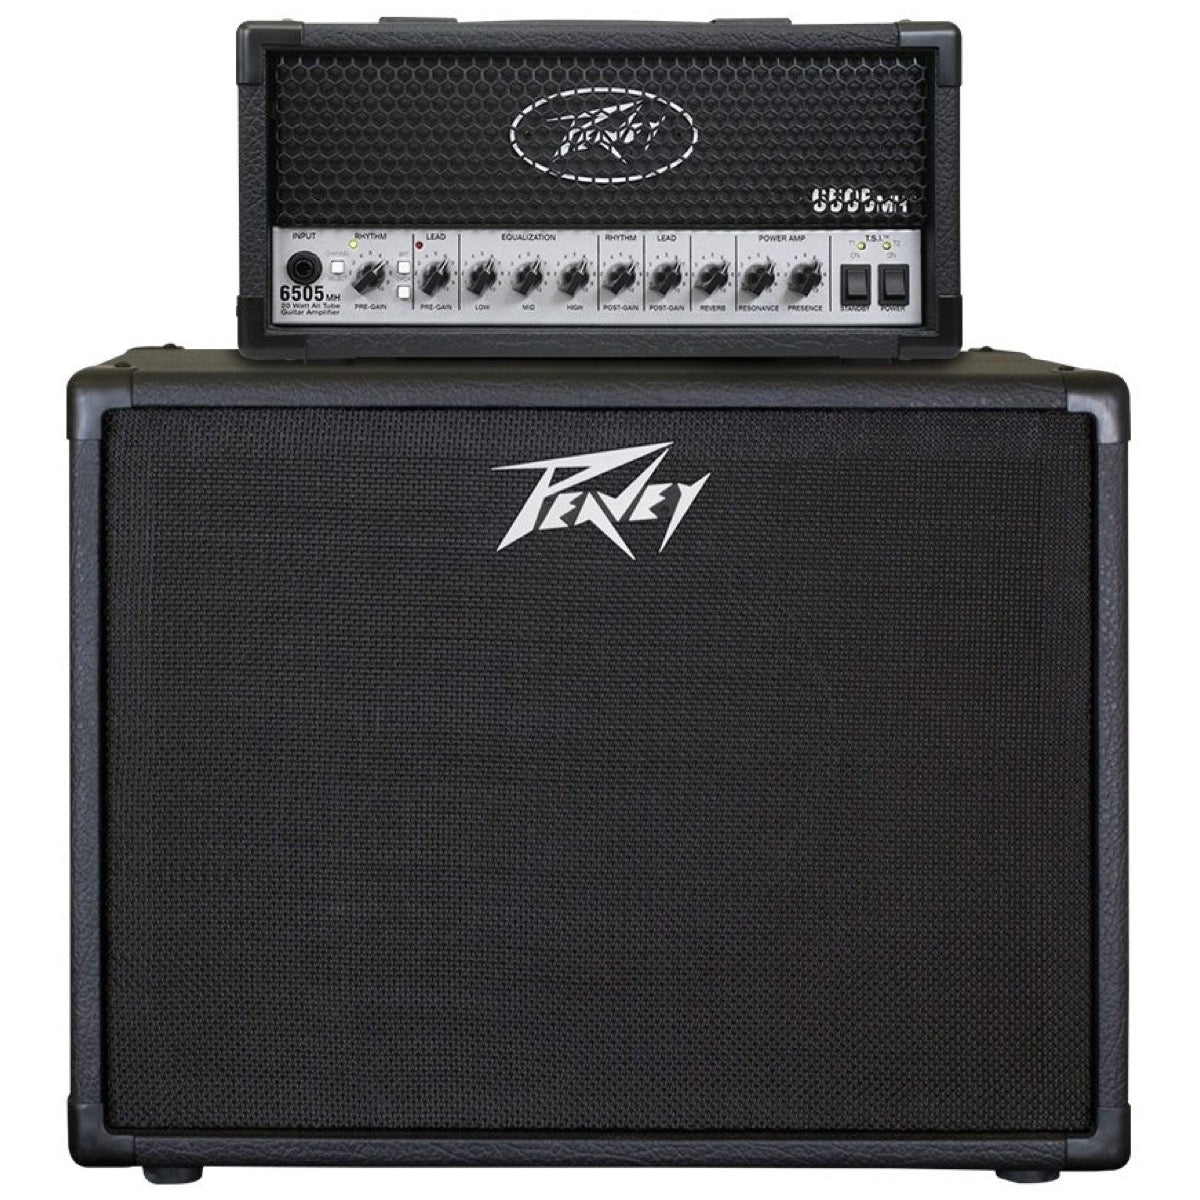 Peavey 6505 Plus Guitar Amplifier Half Stack